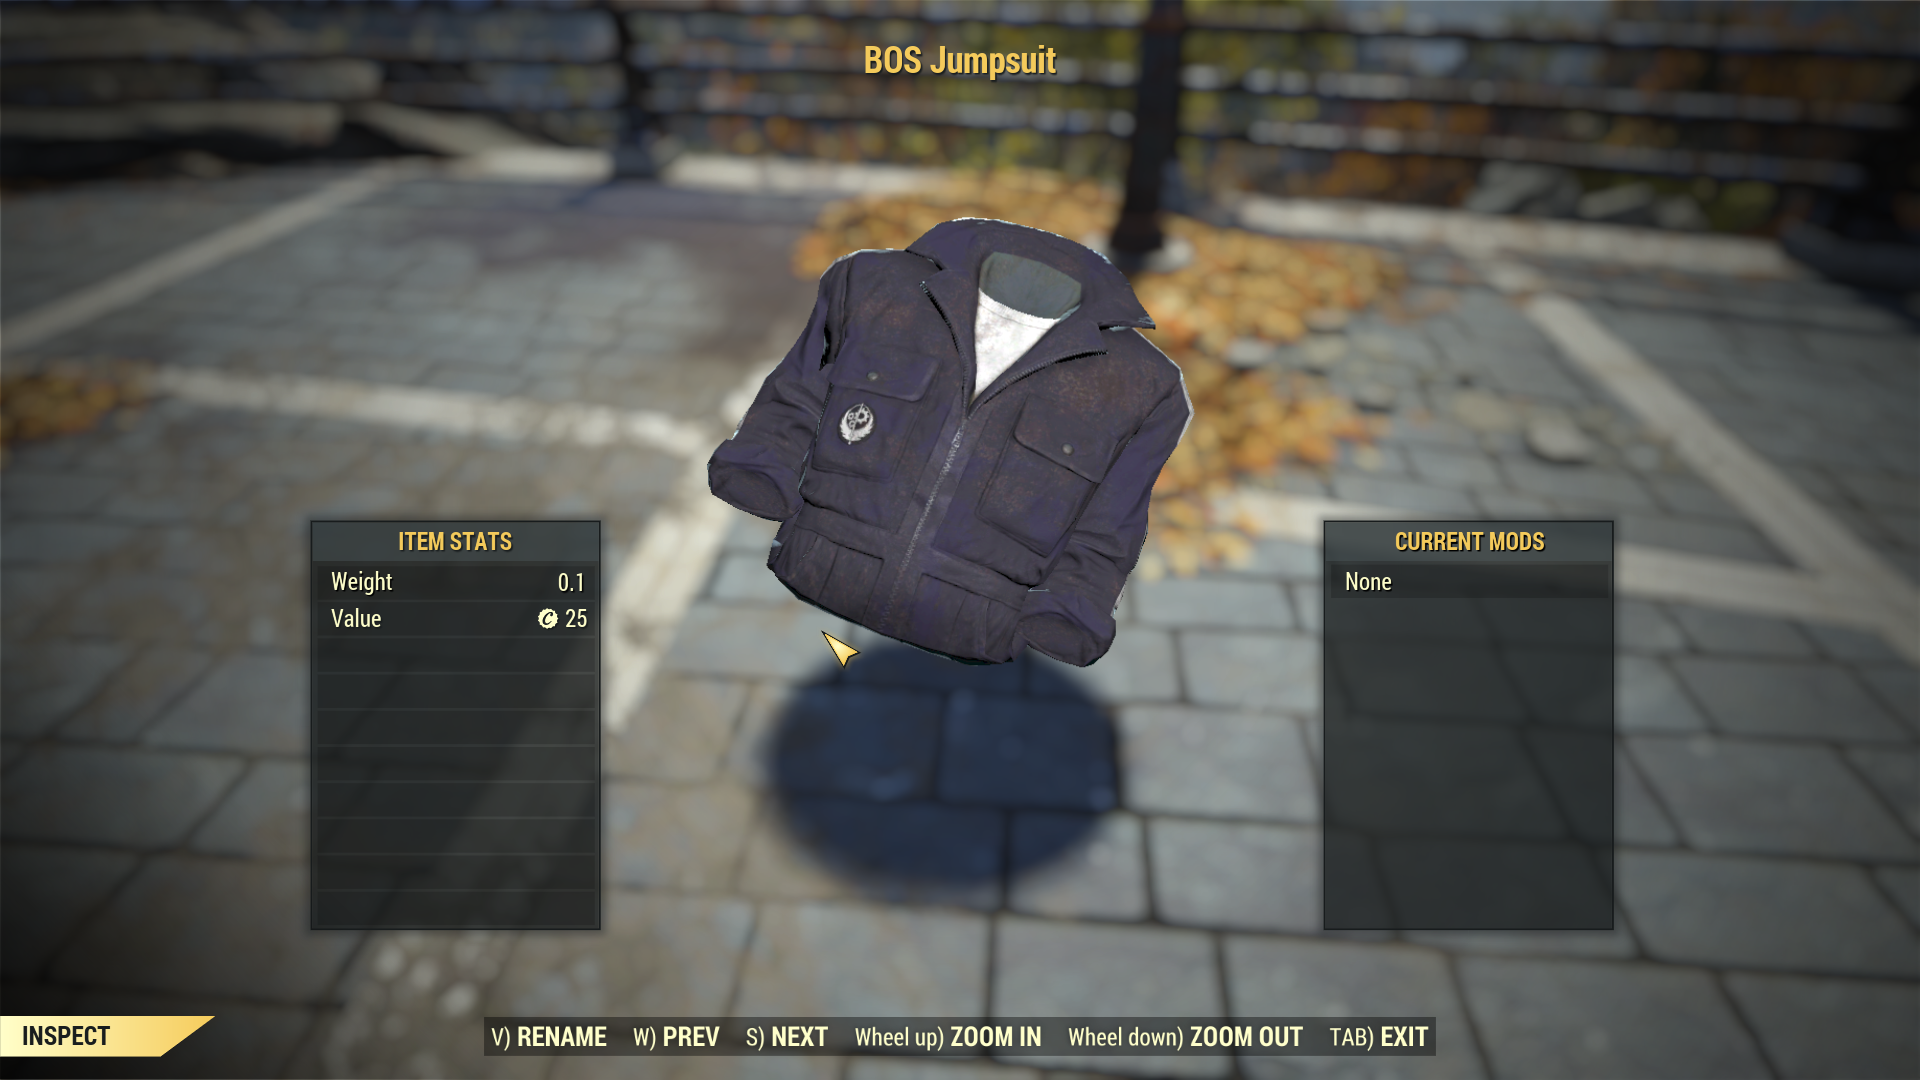 [Rare outfit] BOS Jumpsuit